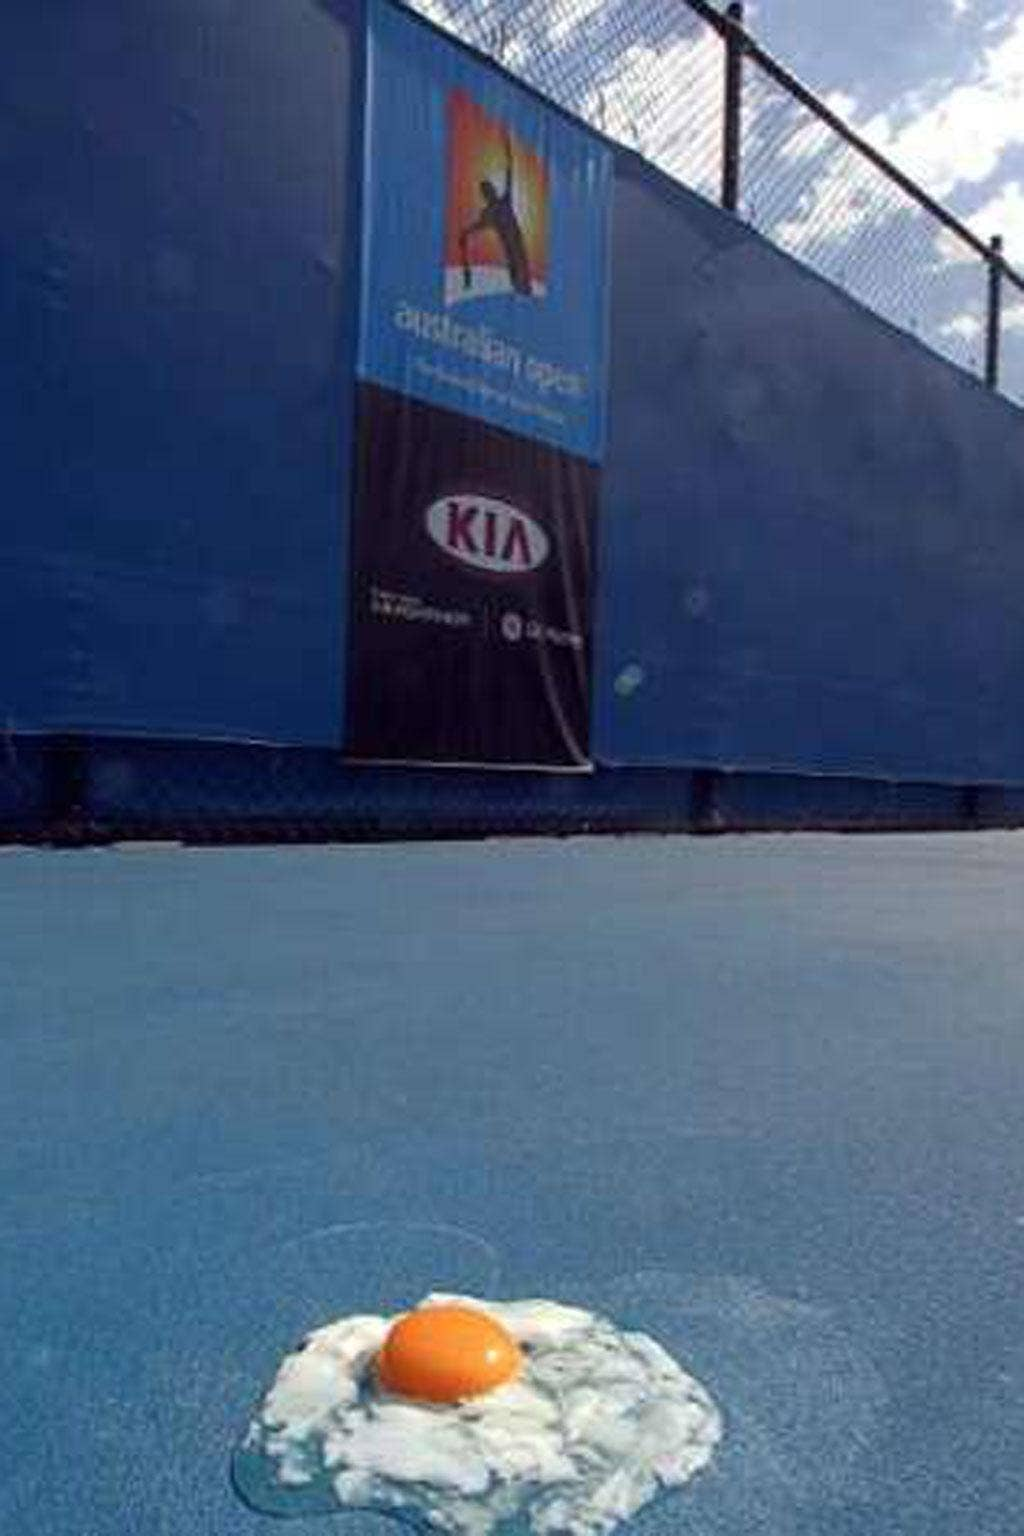 The courts at the Australian Open are so hot that you can boil an egg on the surface.